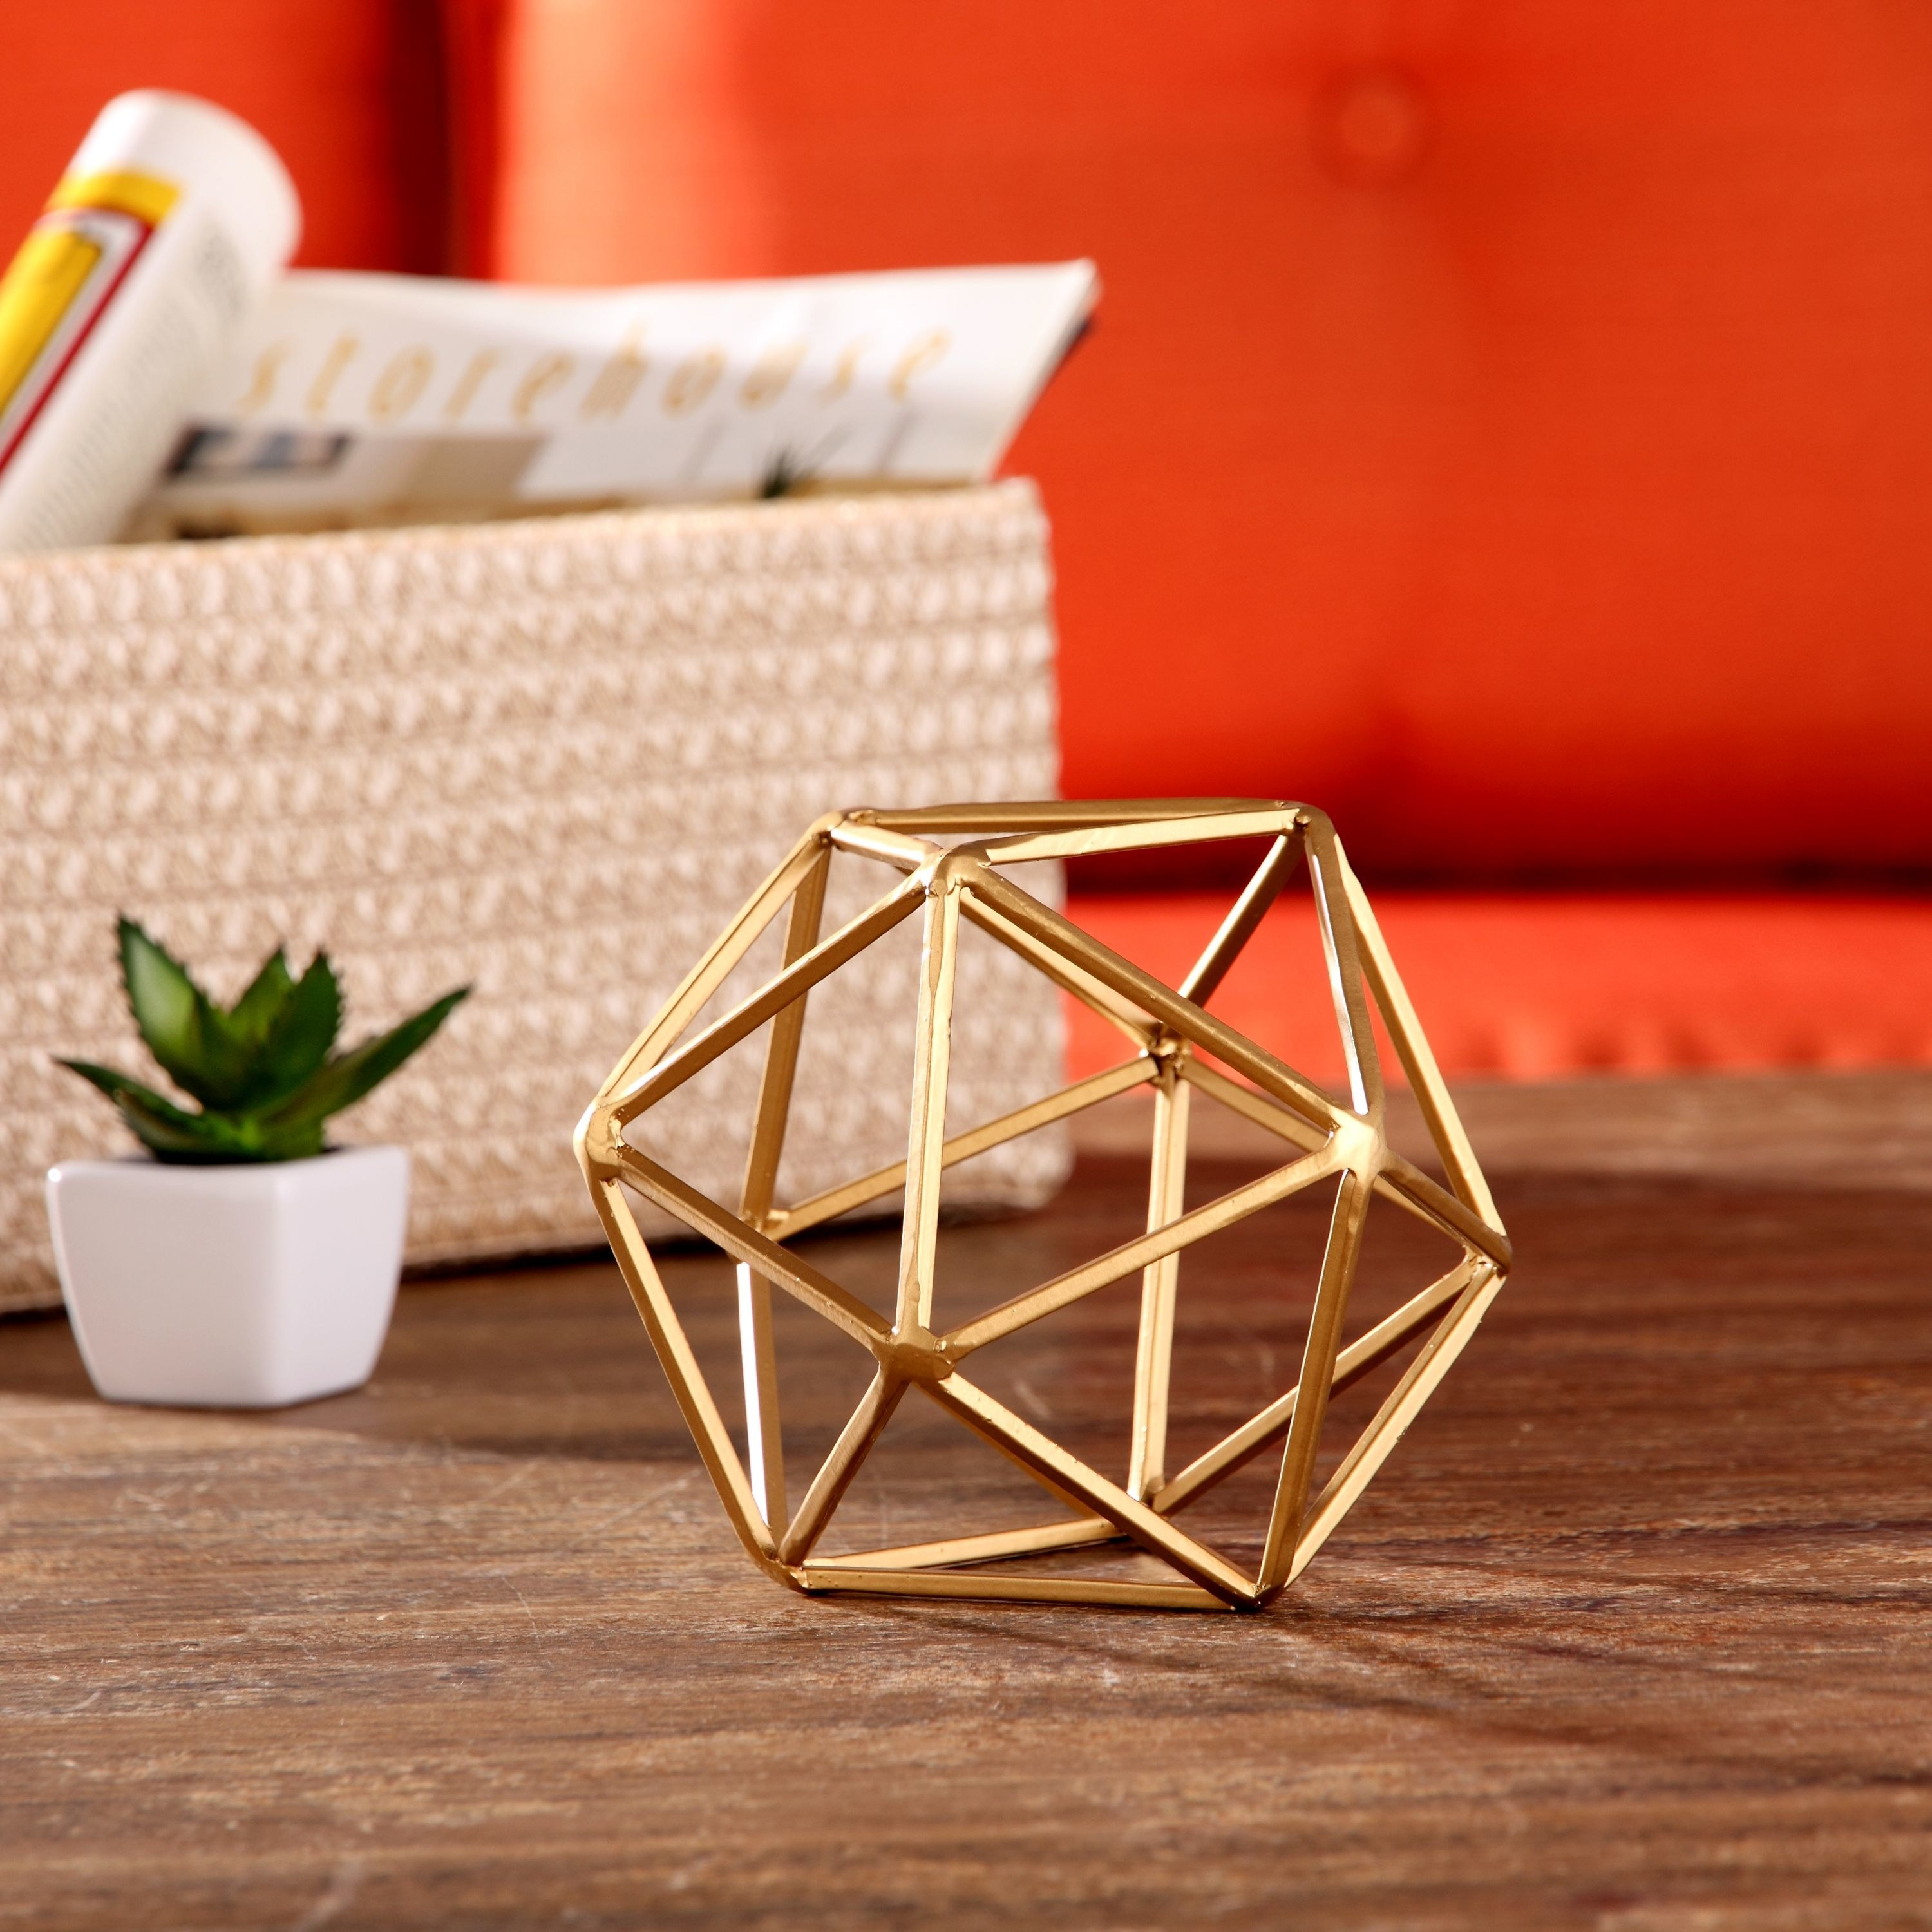 the geometric sculpture next to a tiny plant